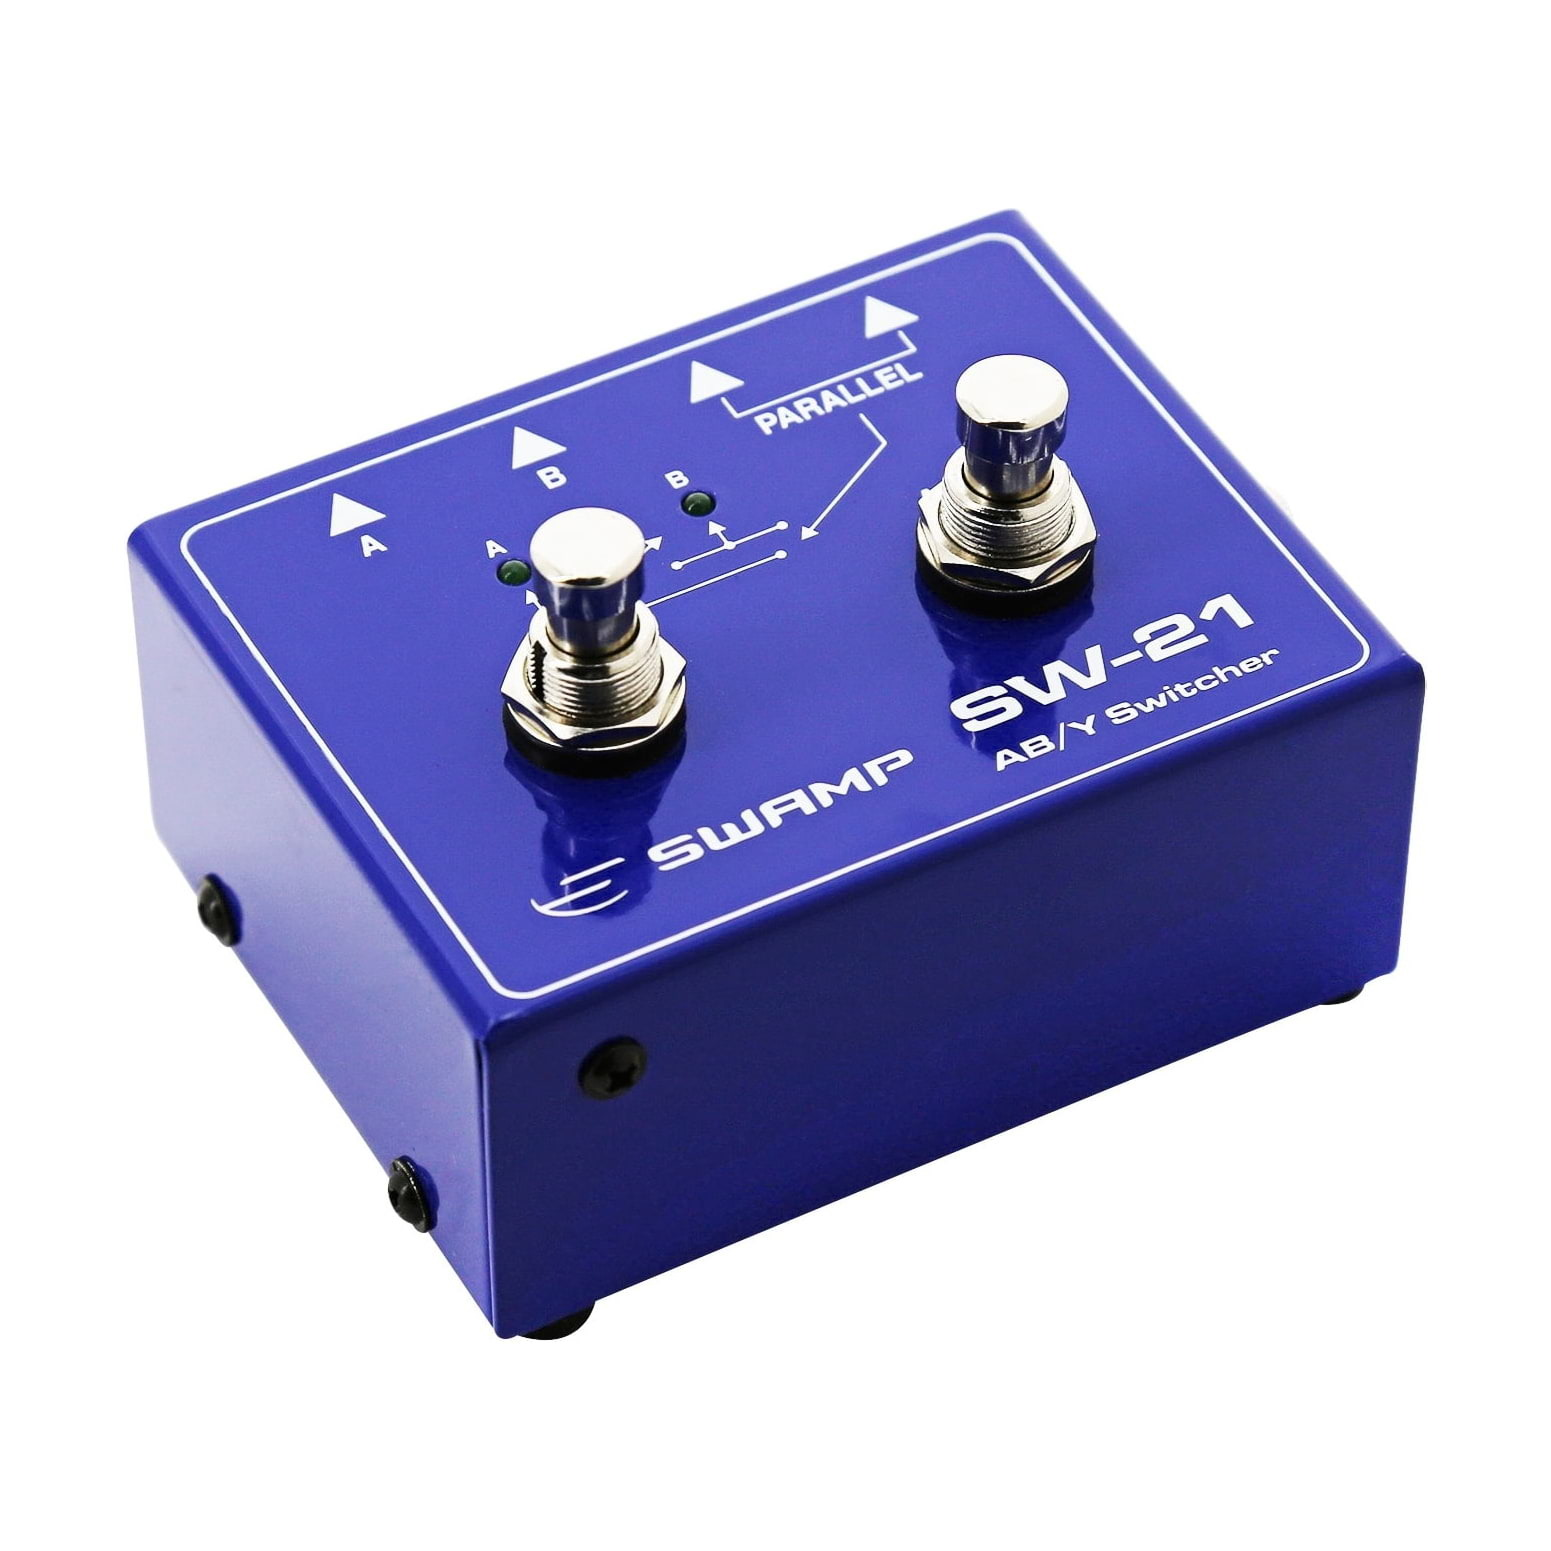 SWAMP Guitar AB Amp Switch  Y Splitter Signal Router  SWAMP